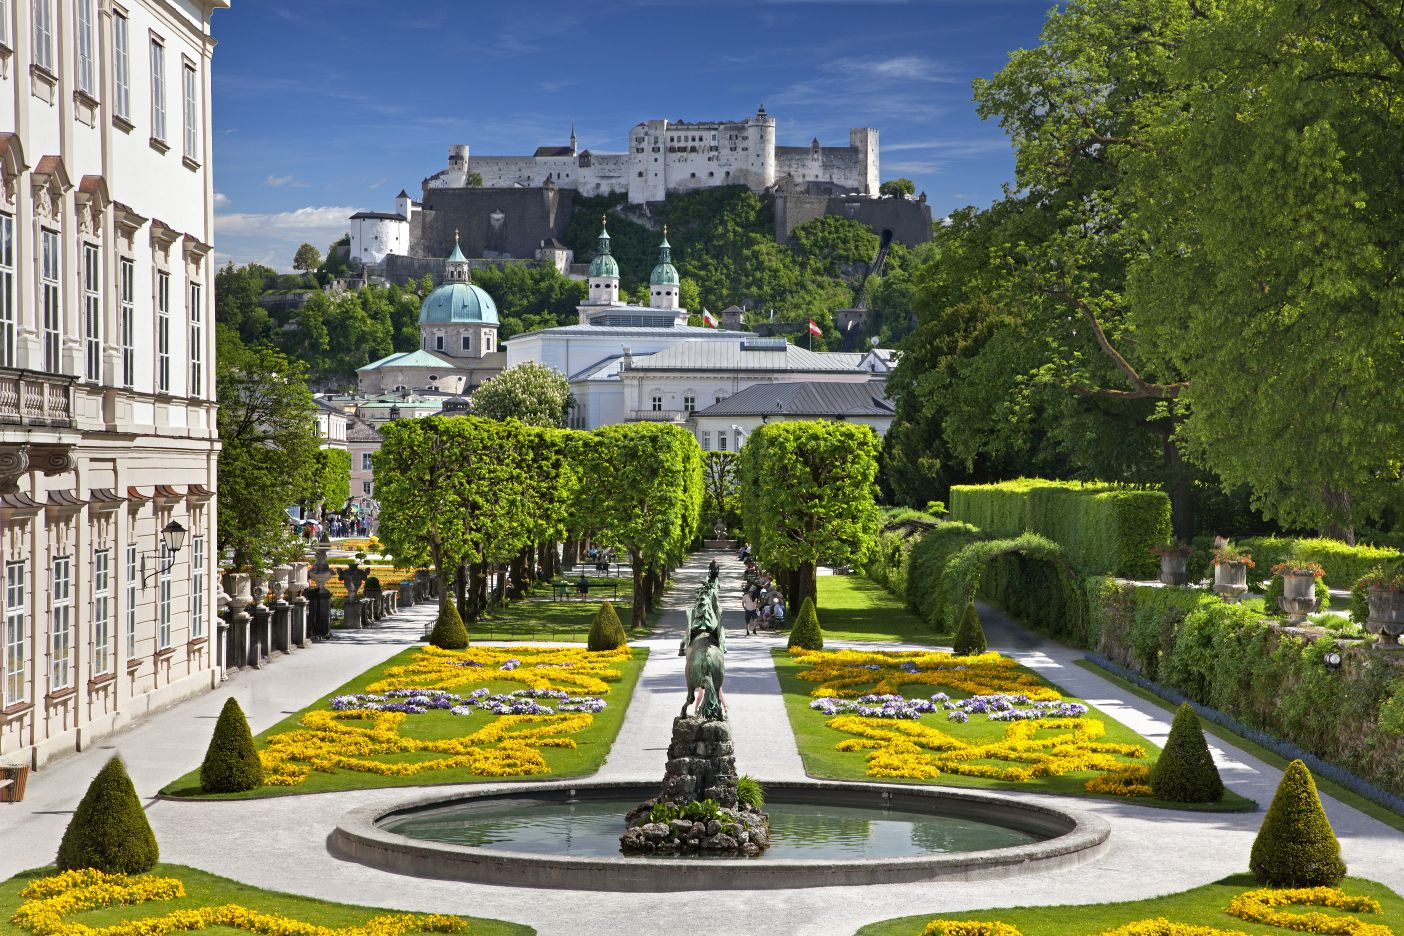 Salzburg Its Hills Are Alive With More Than Music